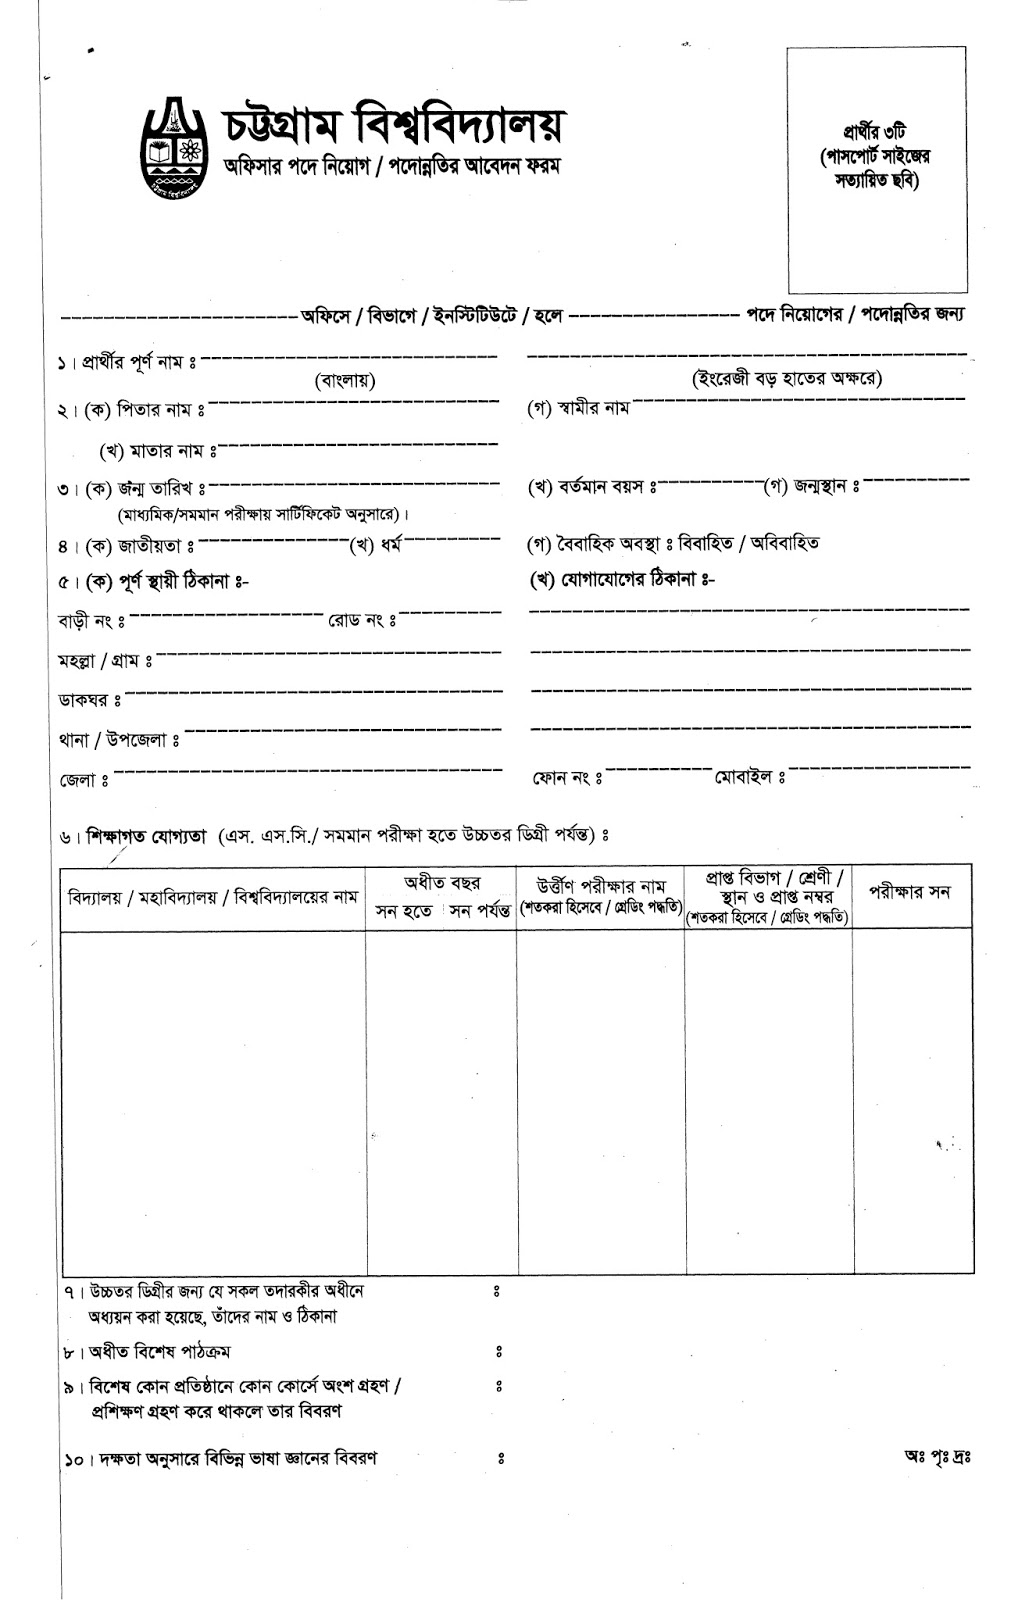 University of Chittagong (CU) Job Application Form